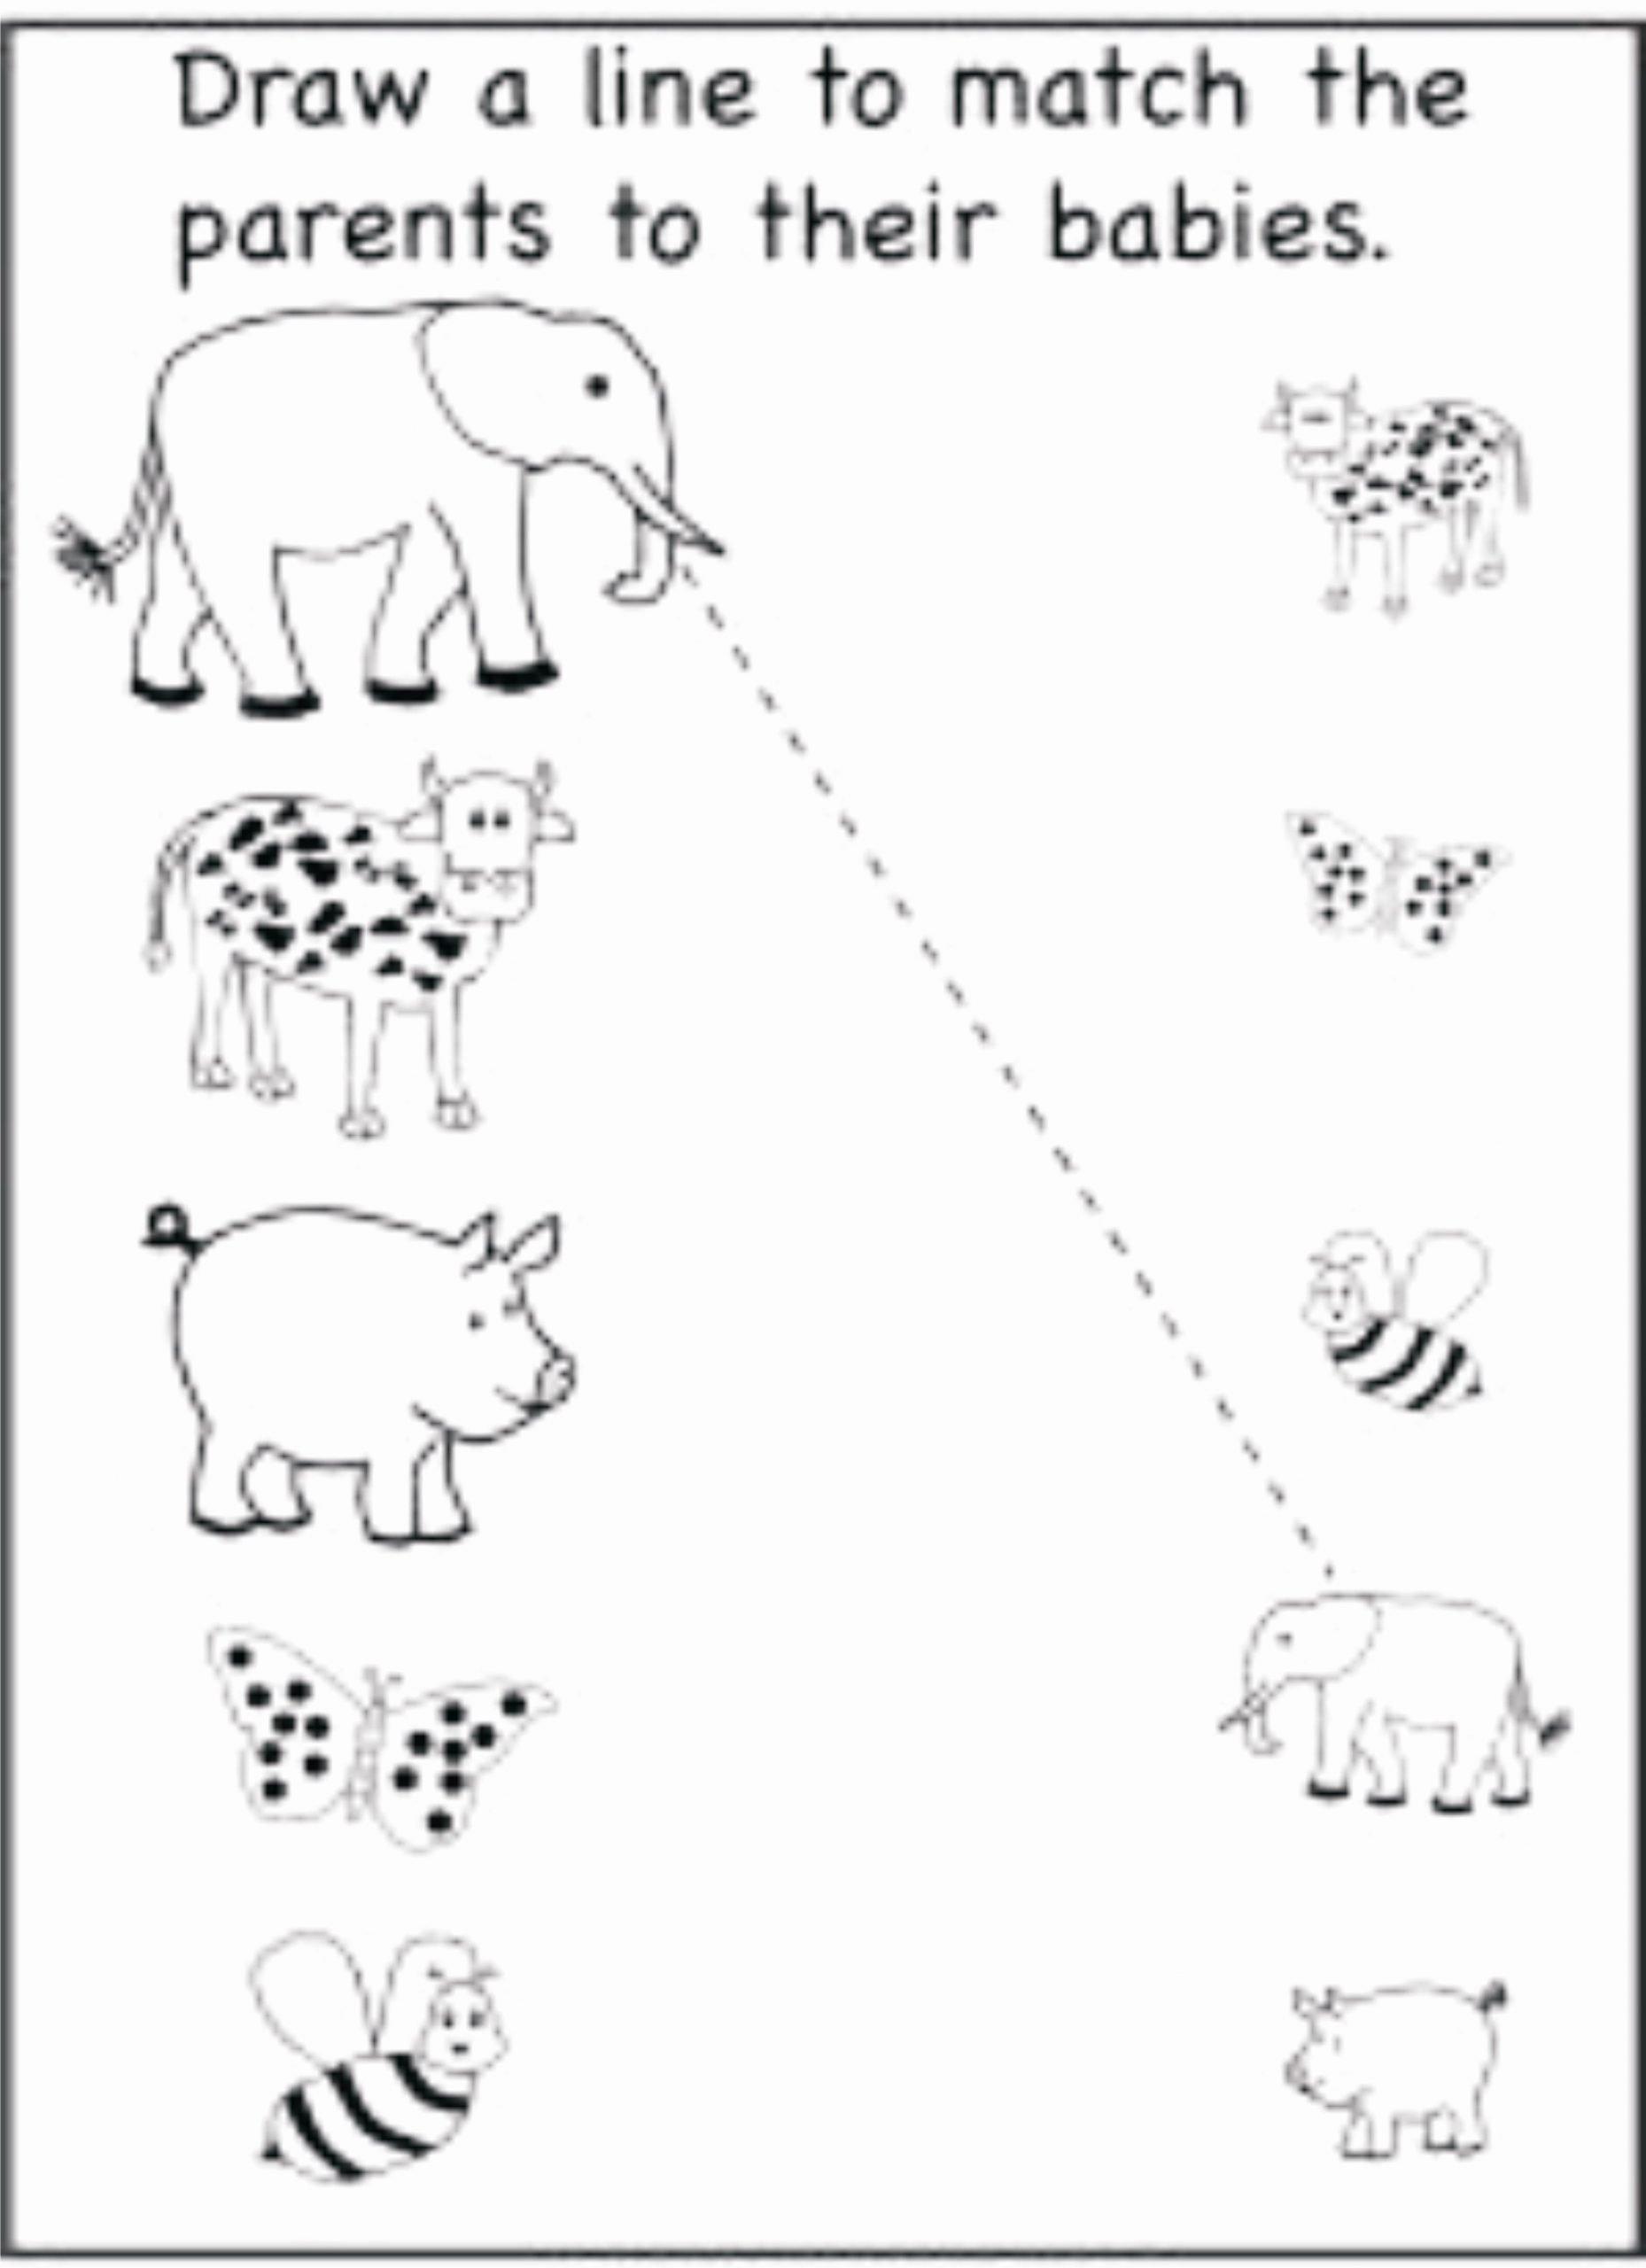 Pairing Worksheets for Preschoolers Awesome Matching Pairs Worksheets Preschool